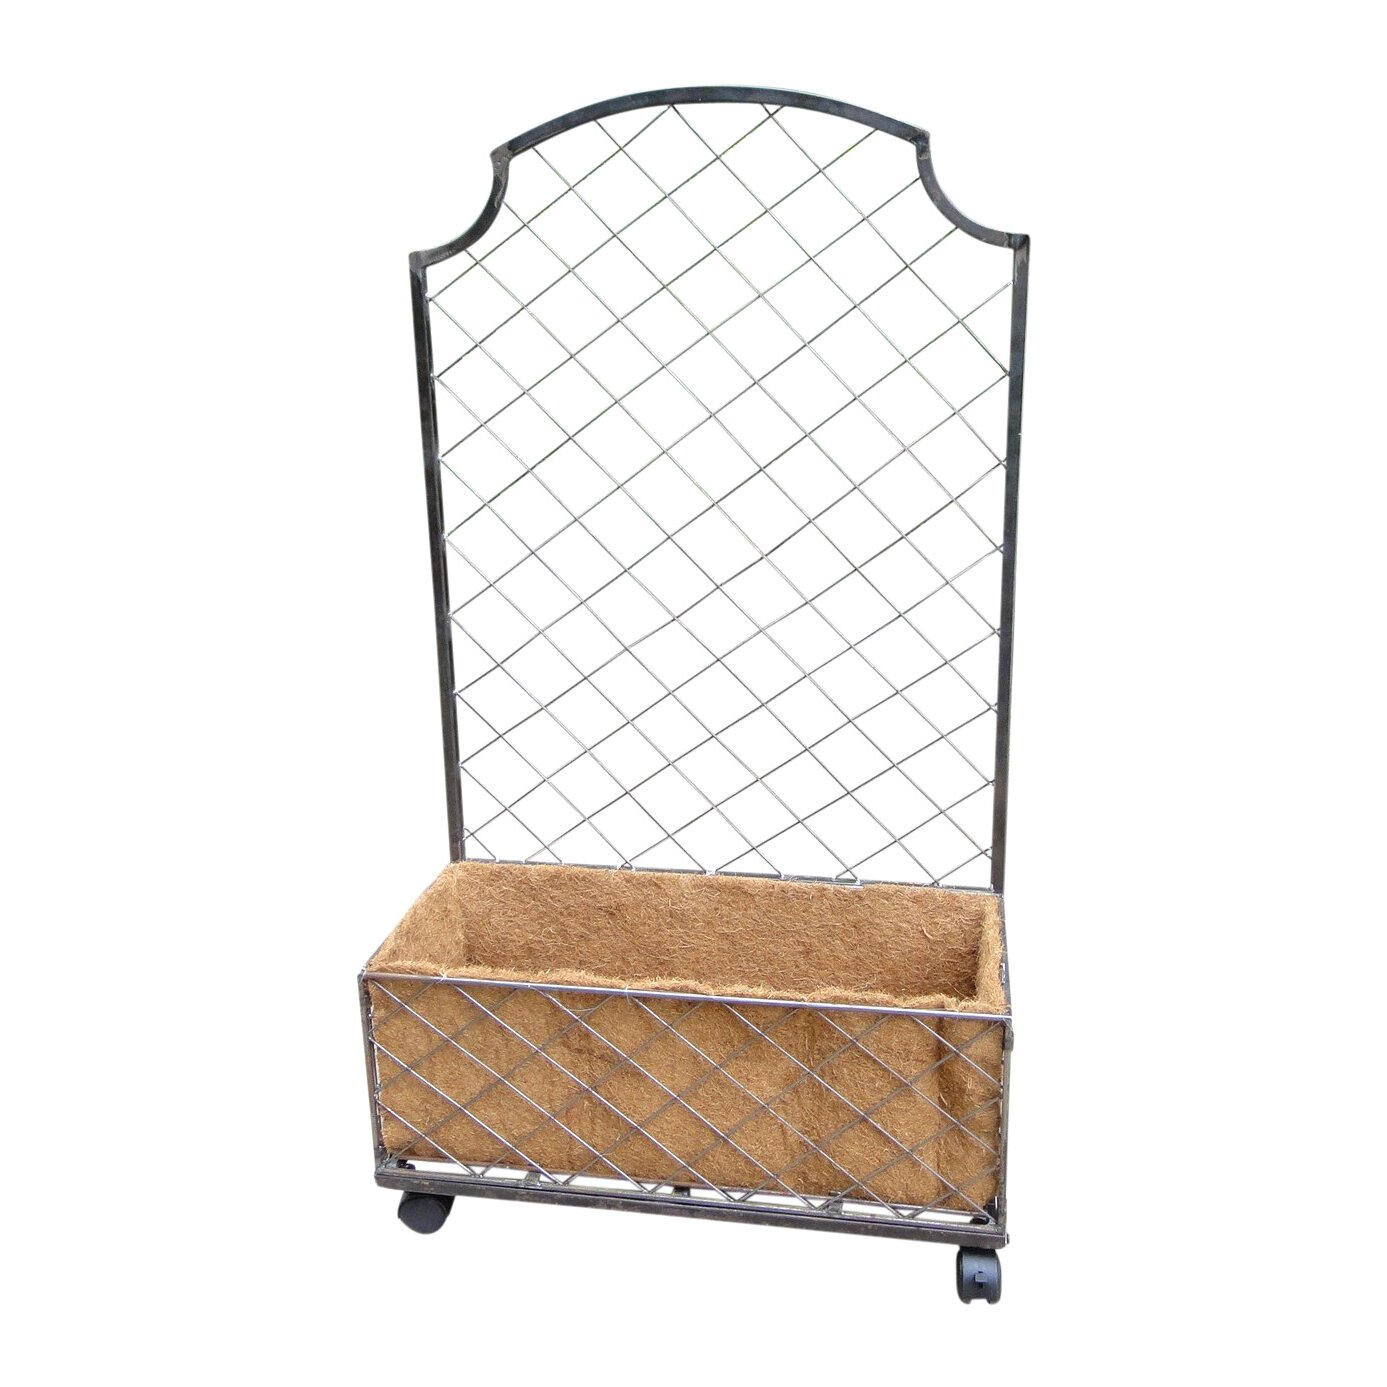 Griffith creek designs trellis privacy screen with planter for Outdoor planter screen